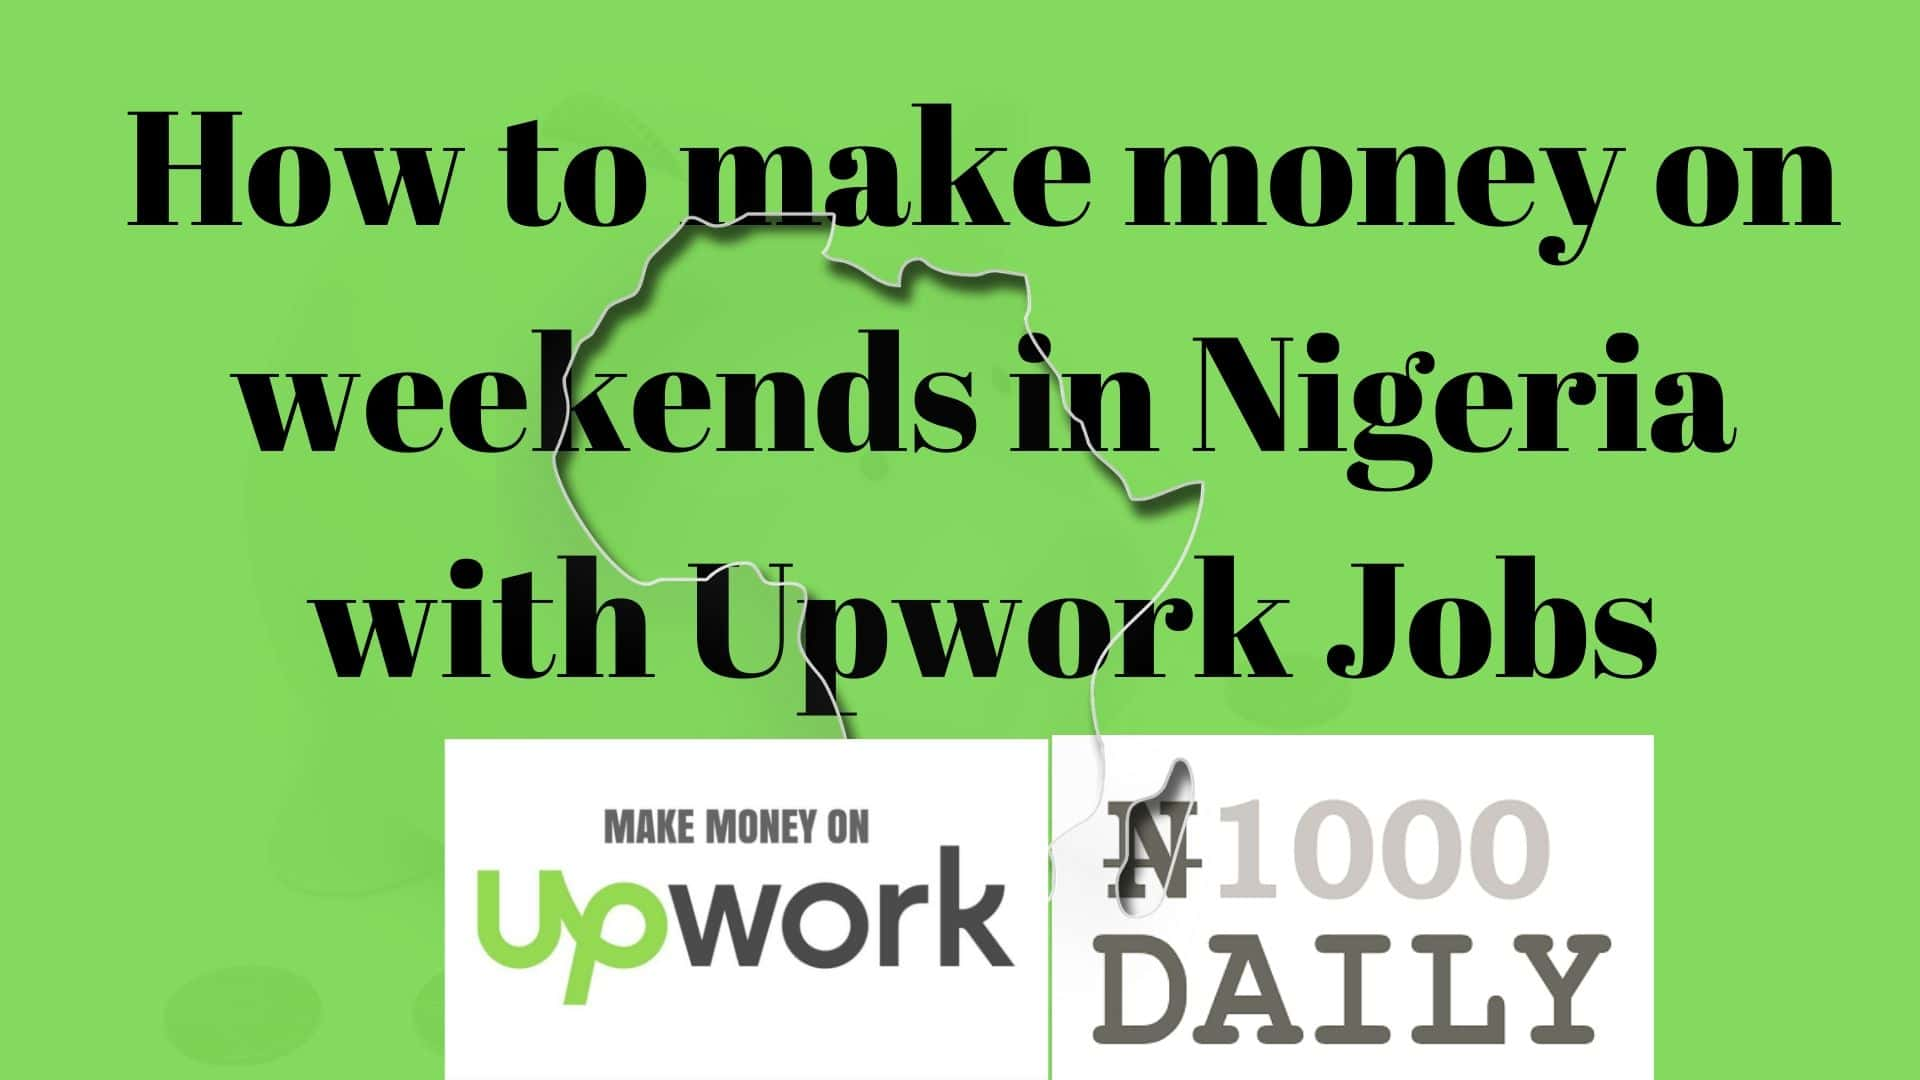 How to make money on weekends with data entry job in upwork